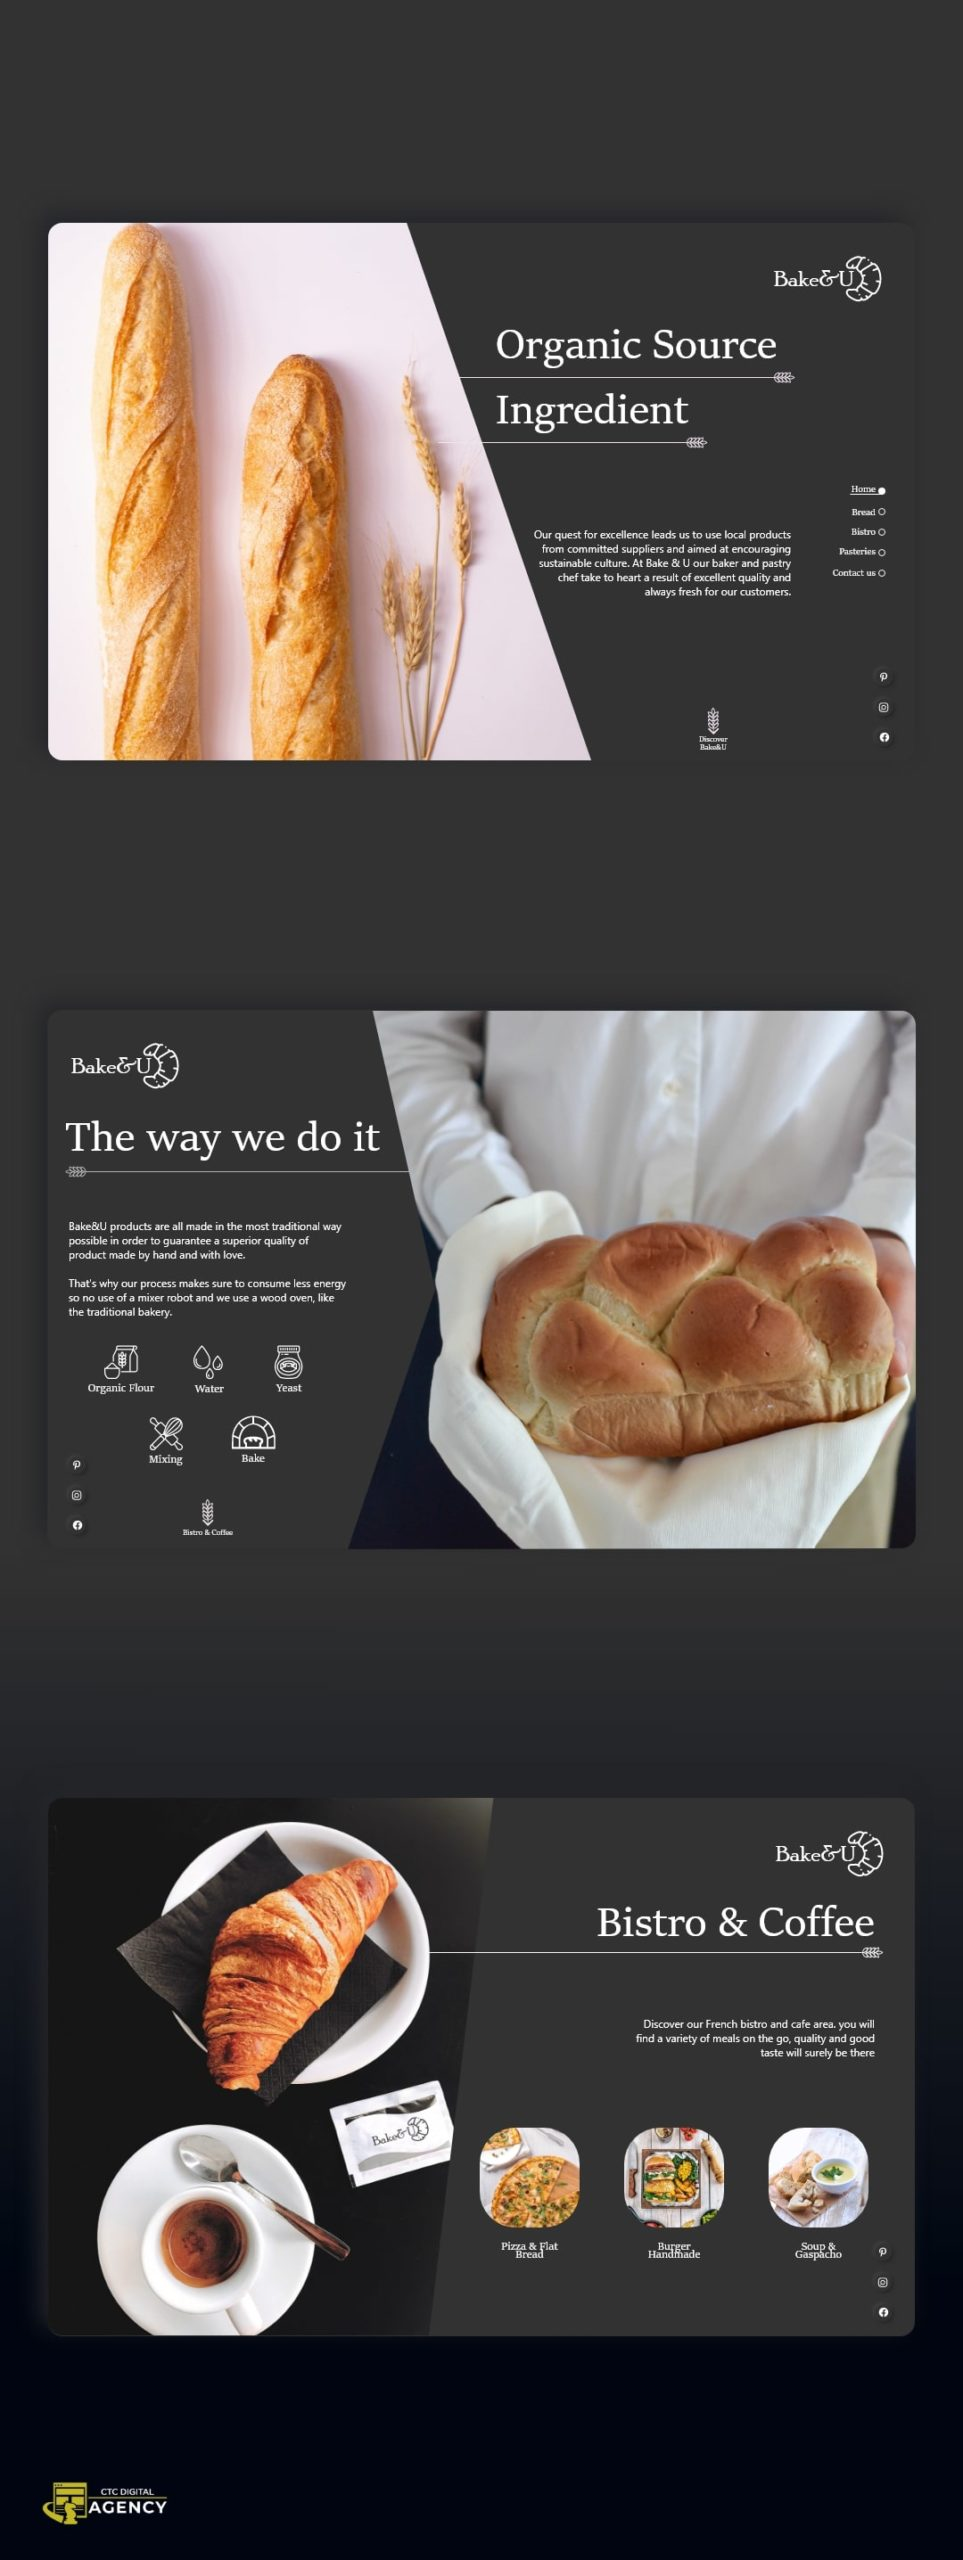 Concept Bake and U by CTC Digital Agency